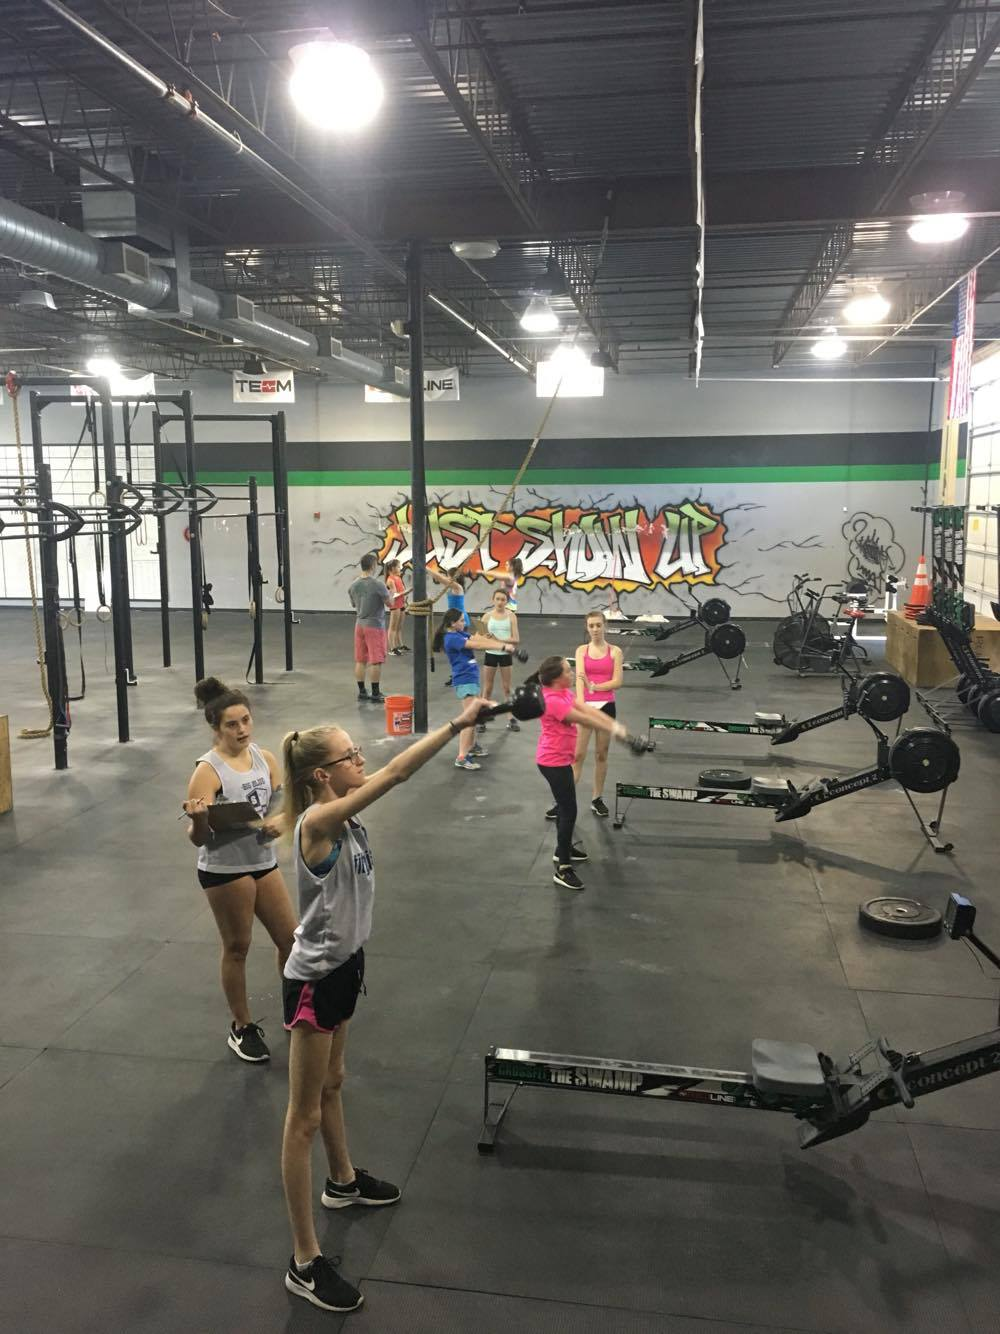 Some of our Swamp Teens throwing down on their version of 17.4